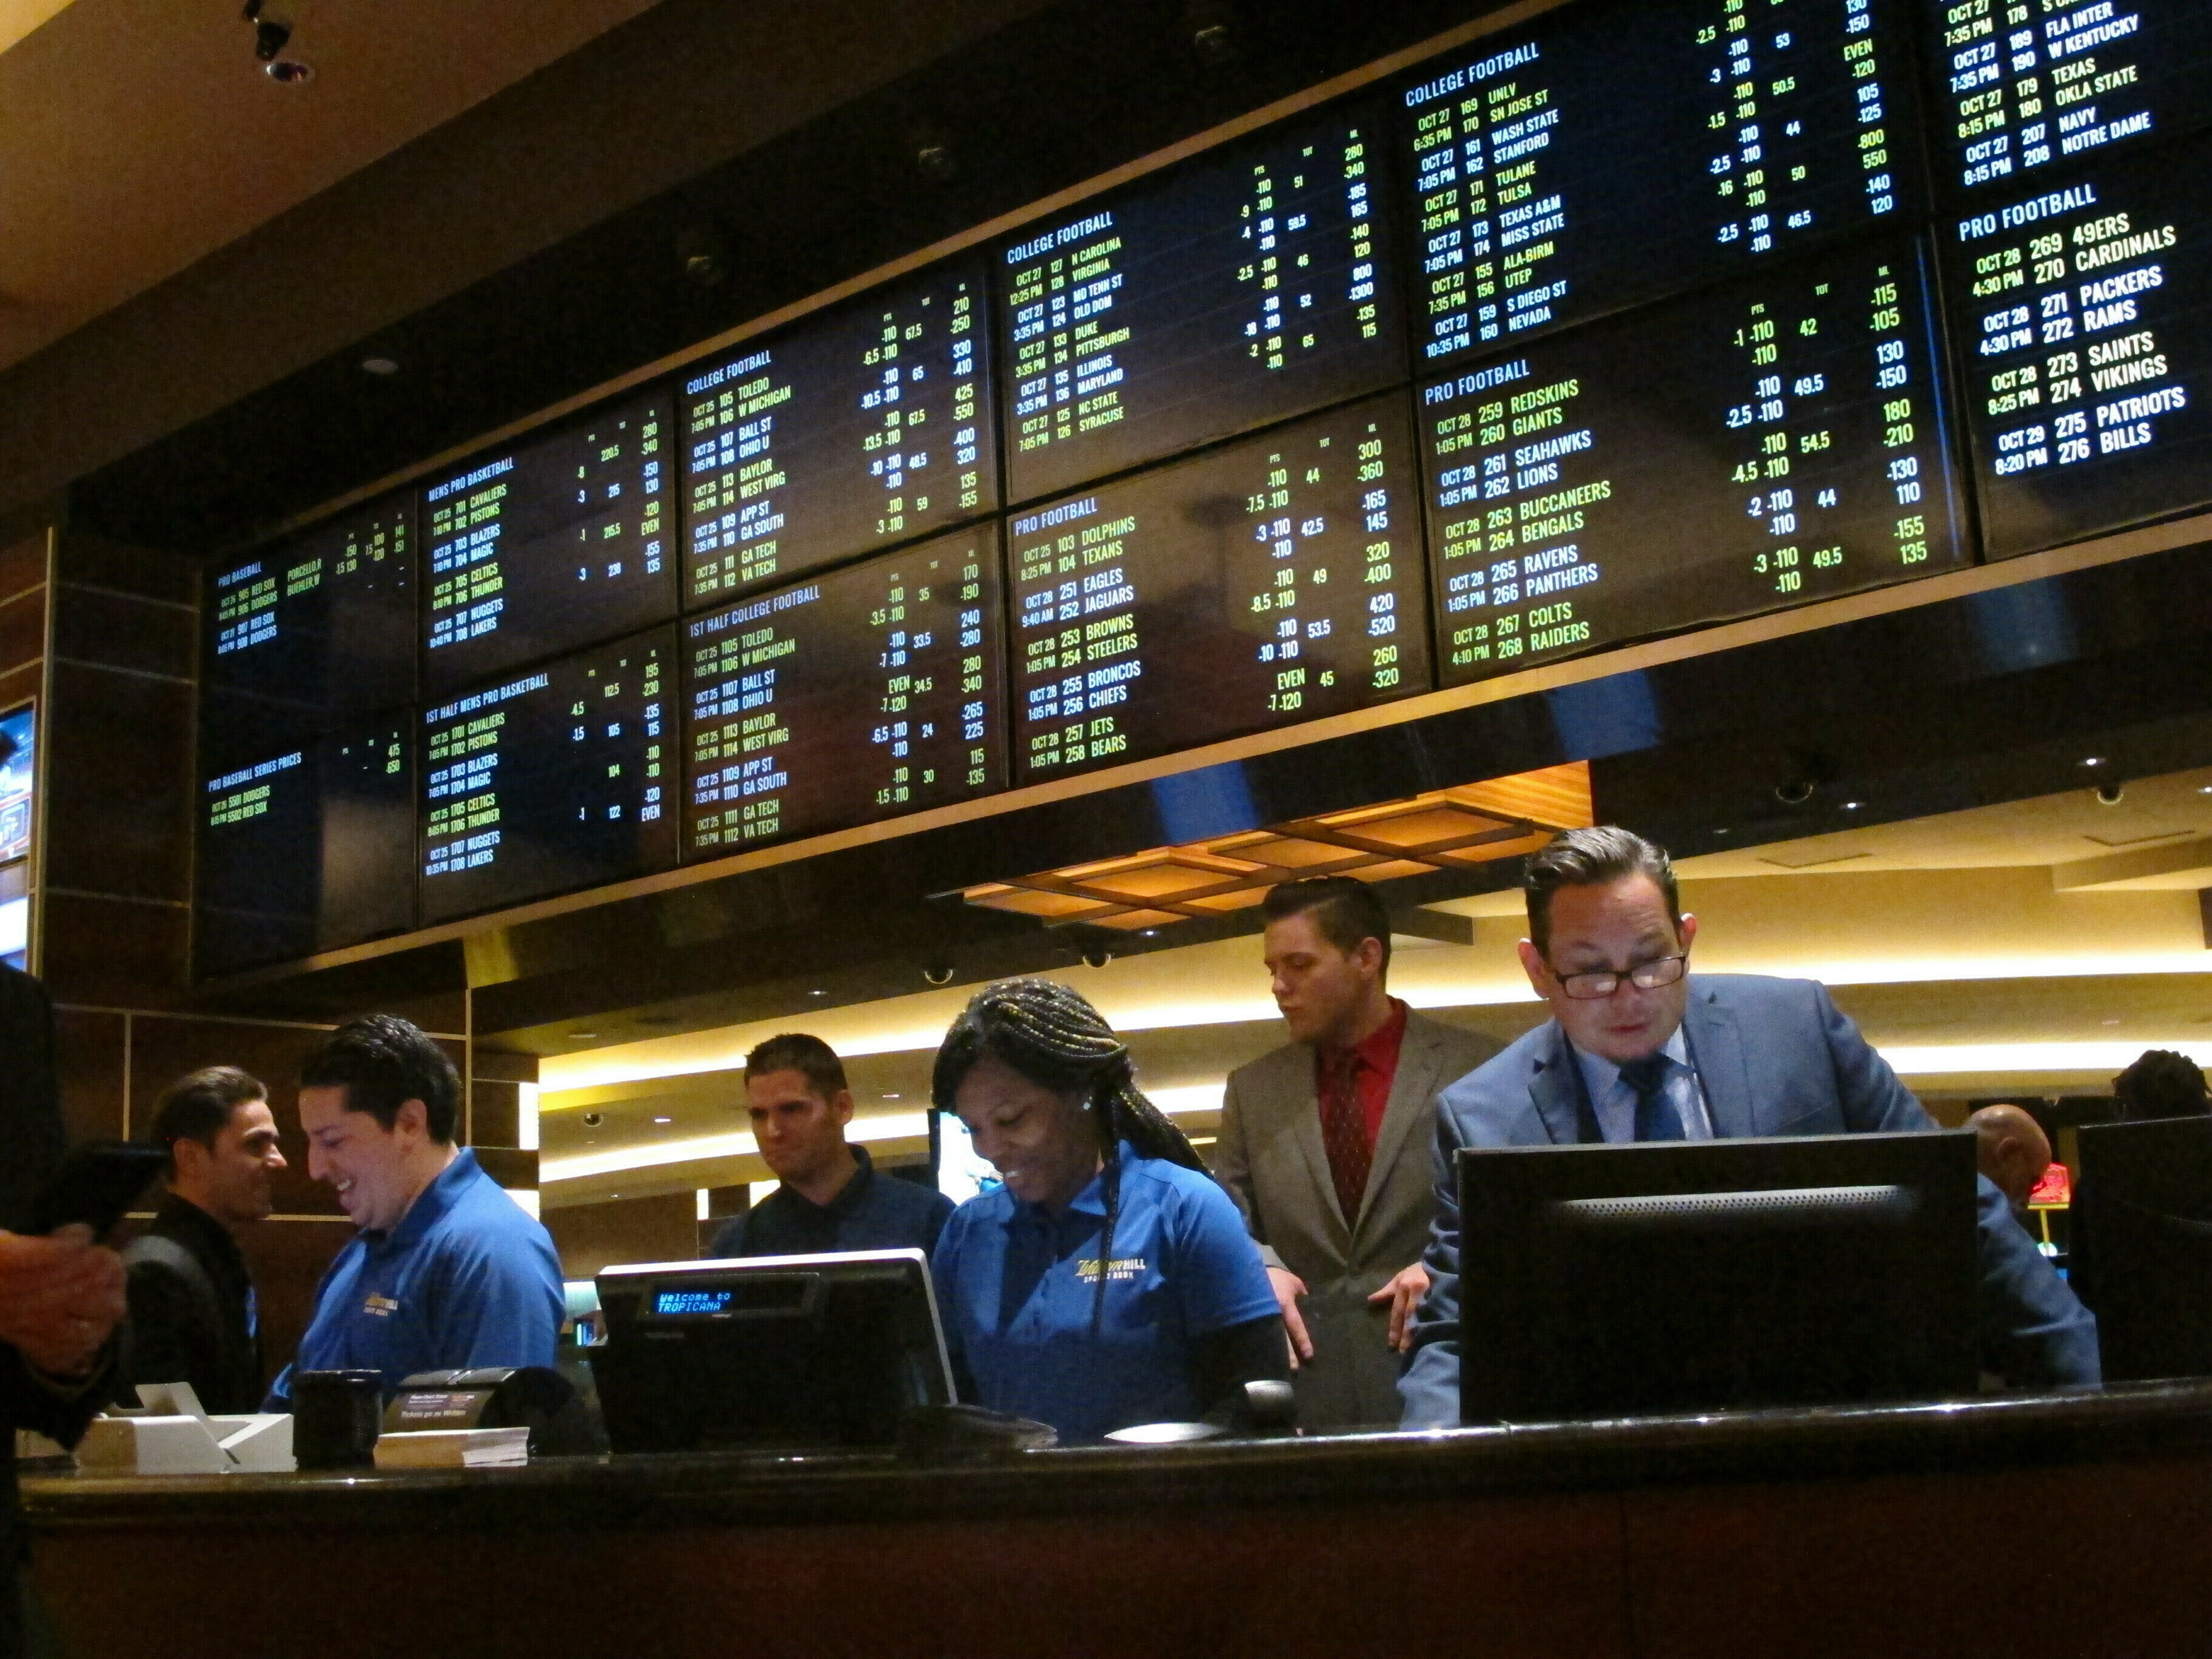 Mgm careers betting sports springfield binary options trading definition